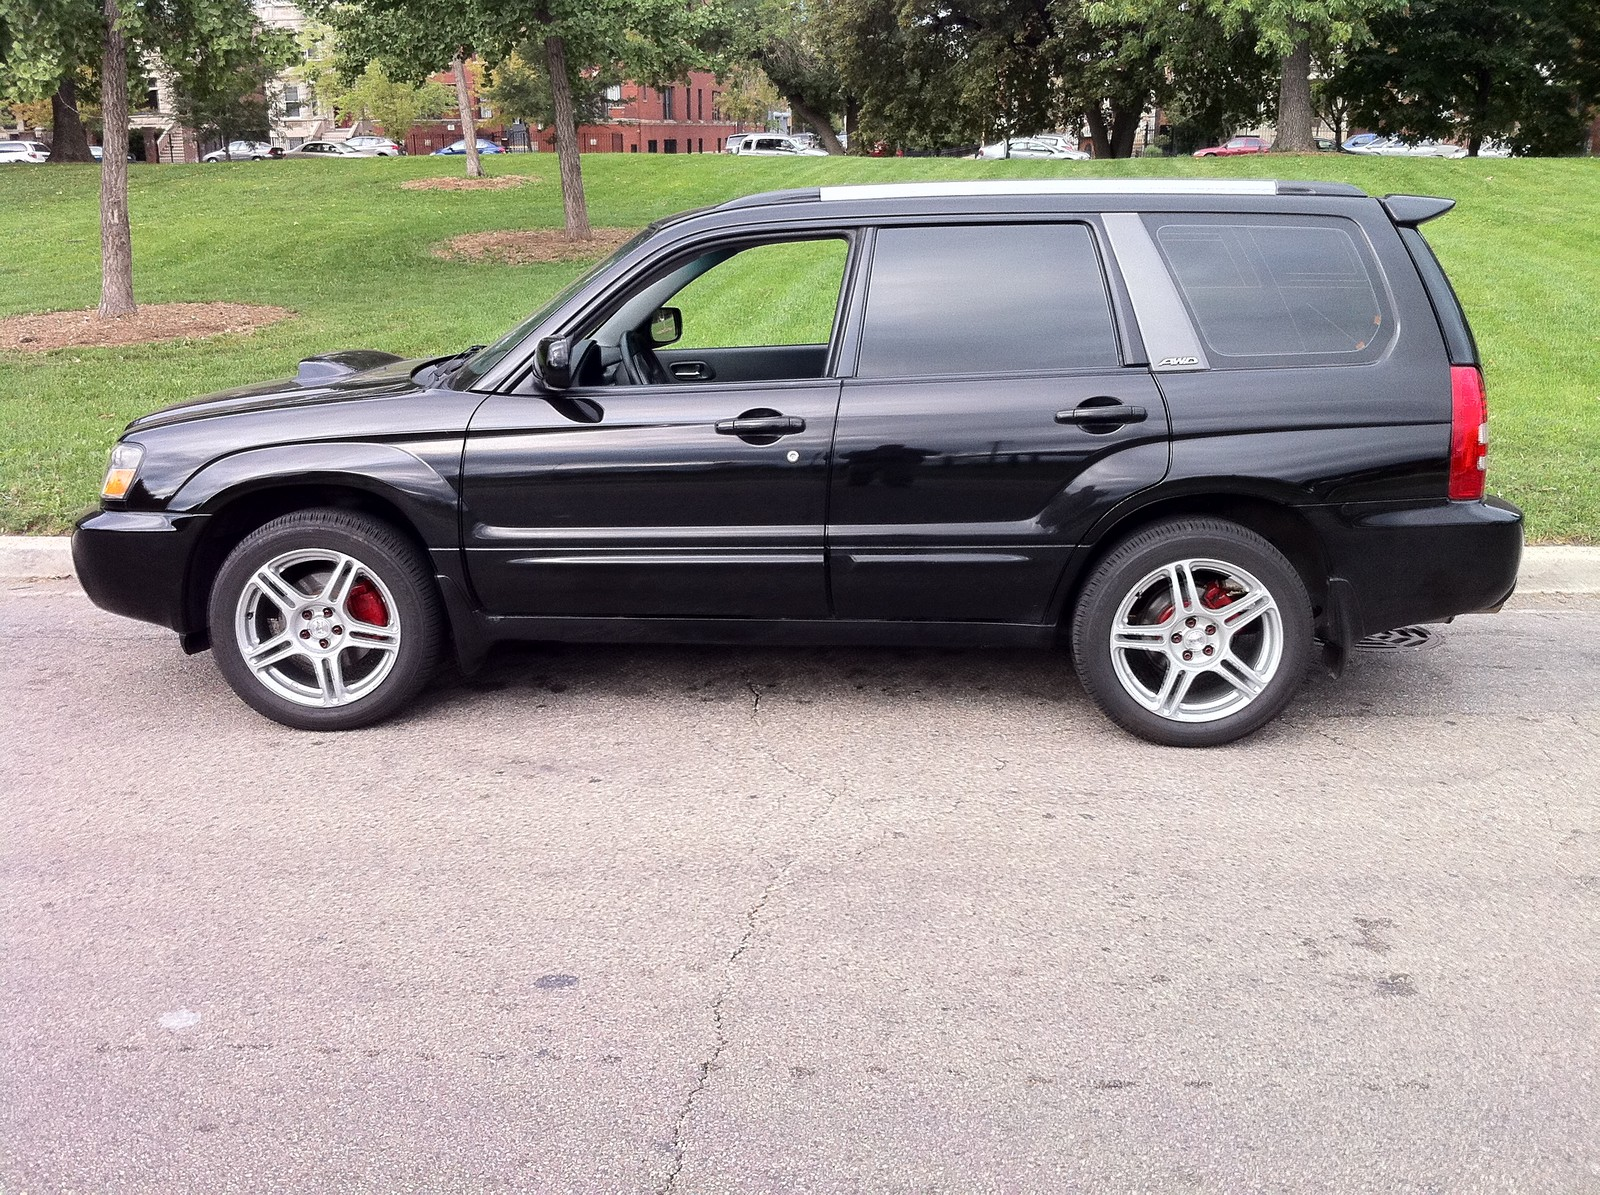 BLACK 2004 Subaru Forester XT